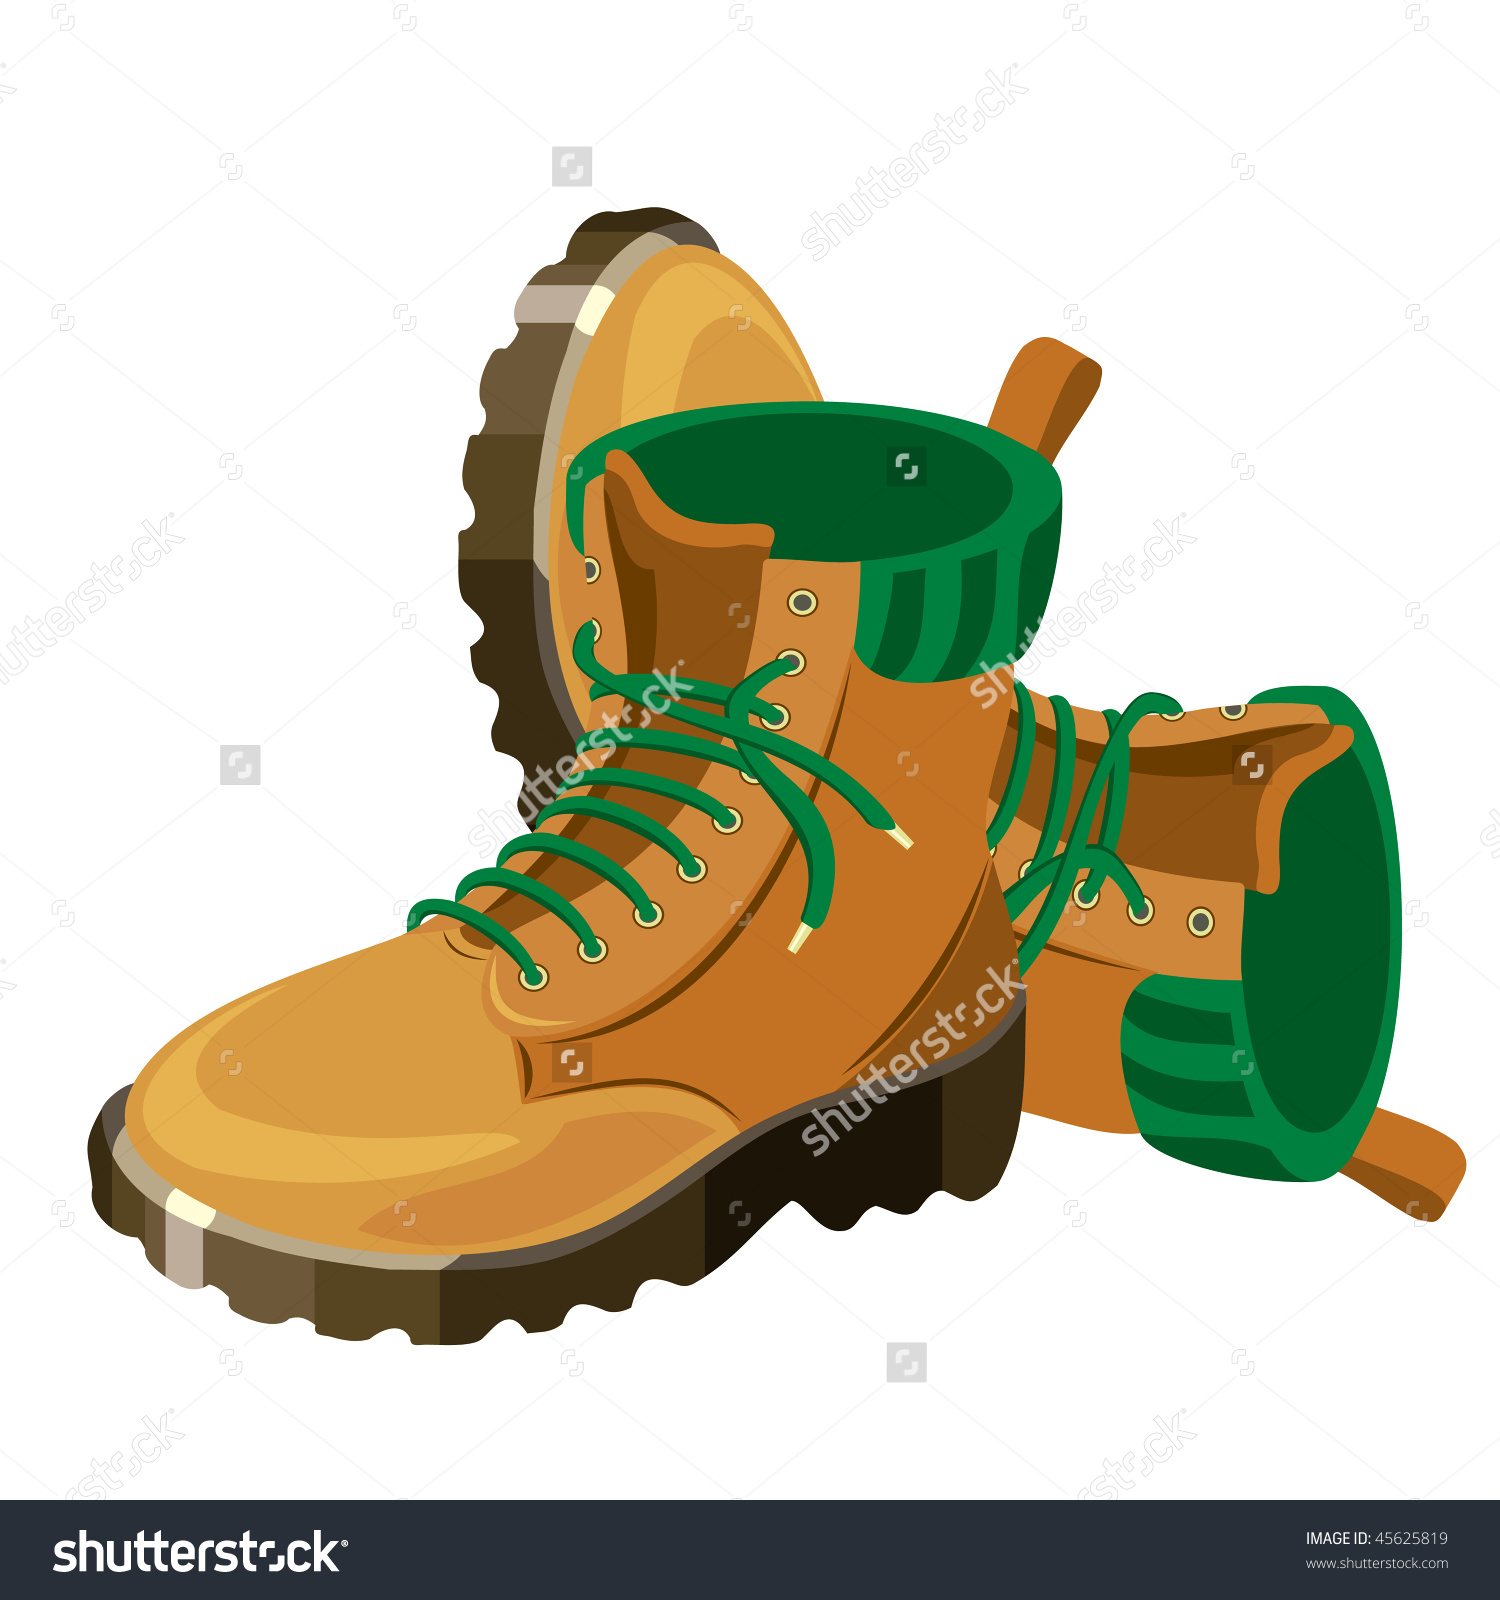 Hiking Shoes Clipart Clipground